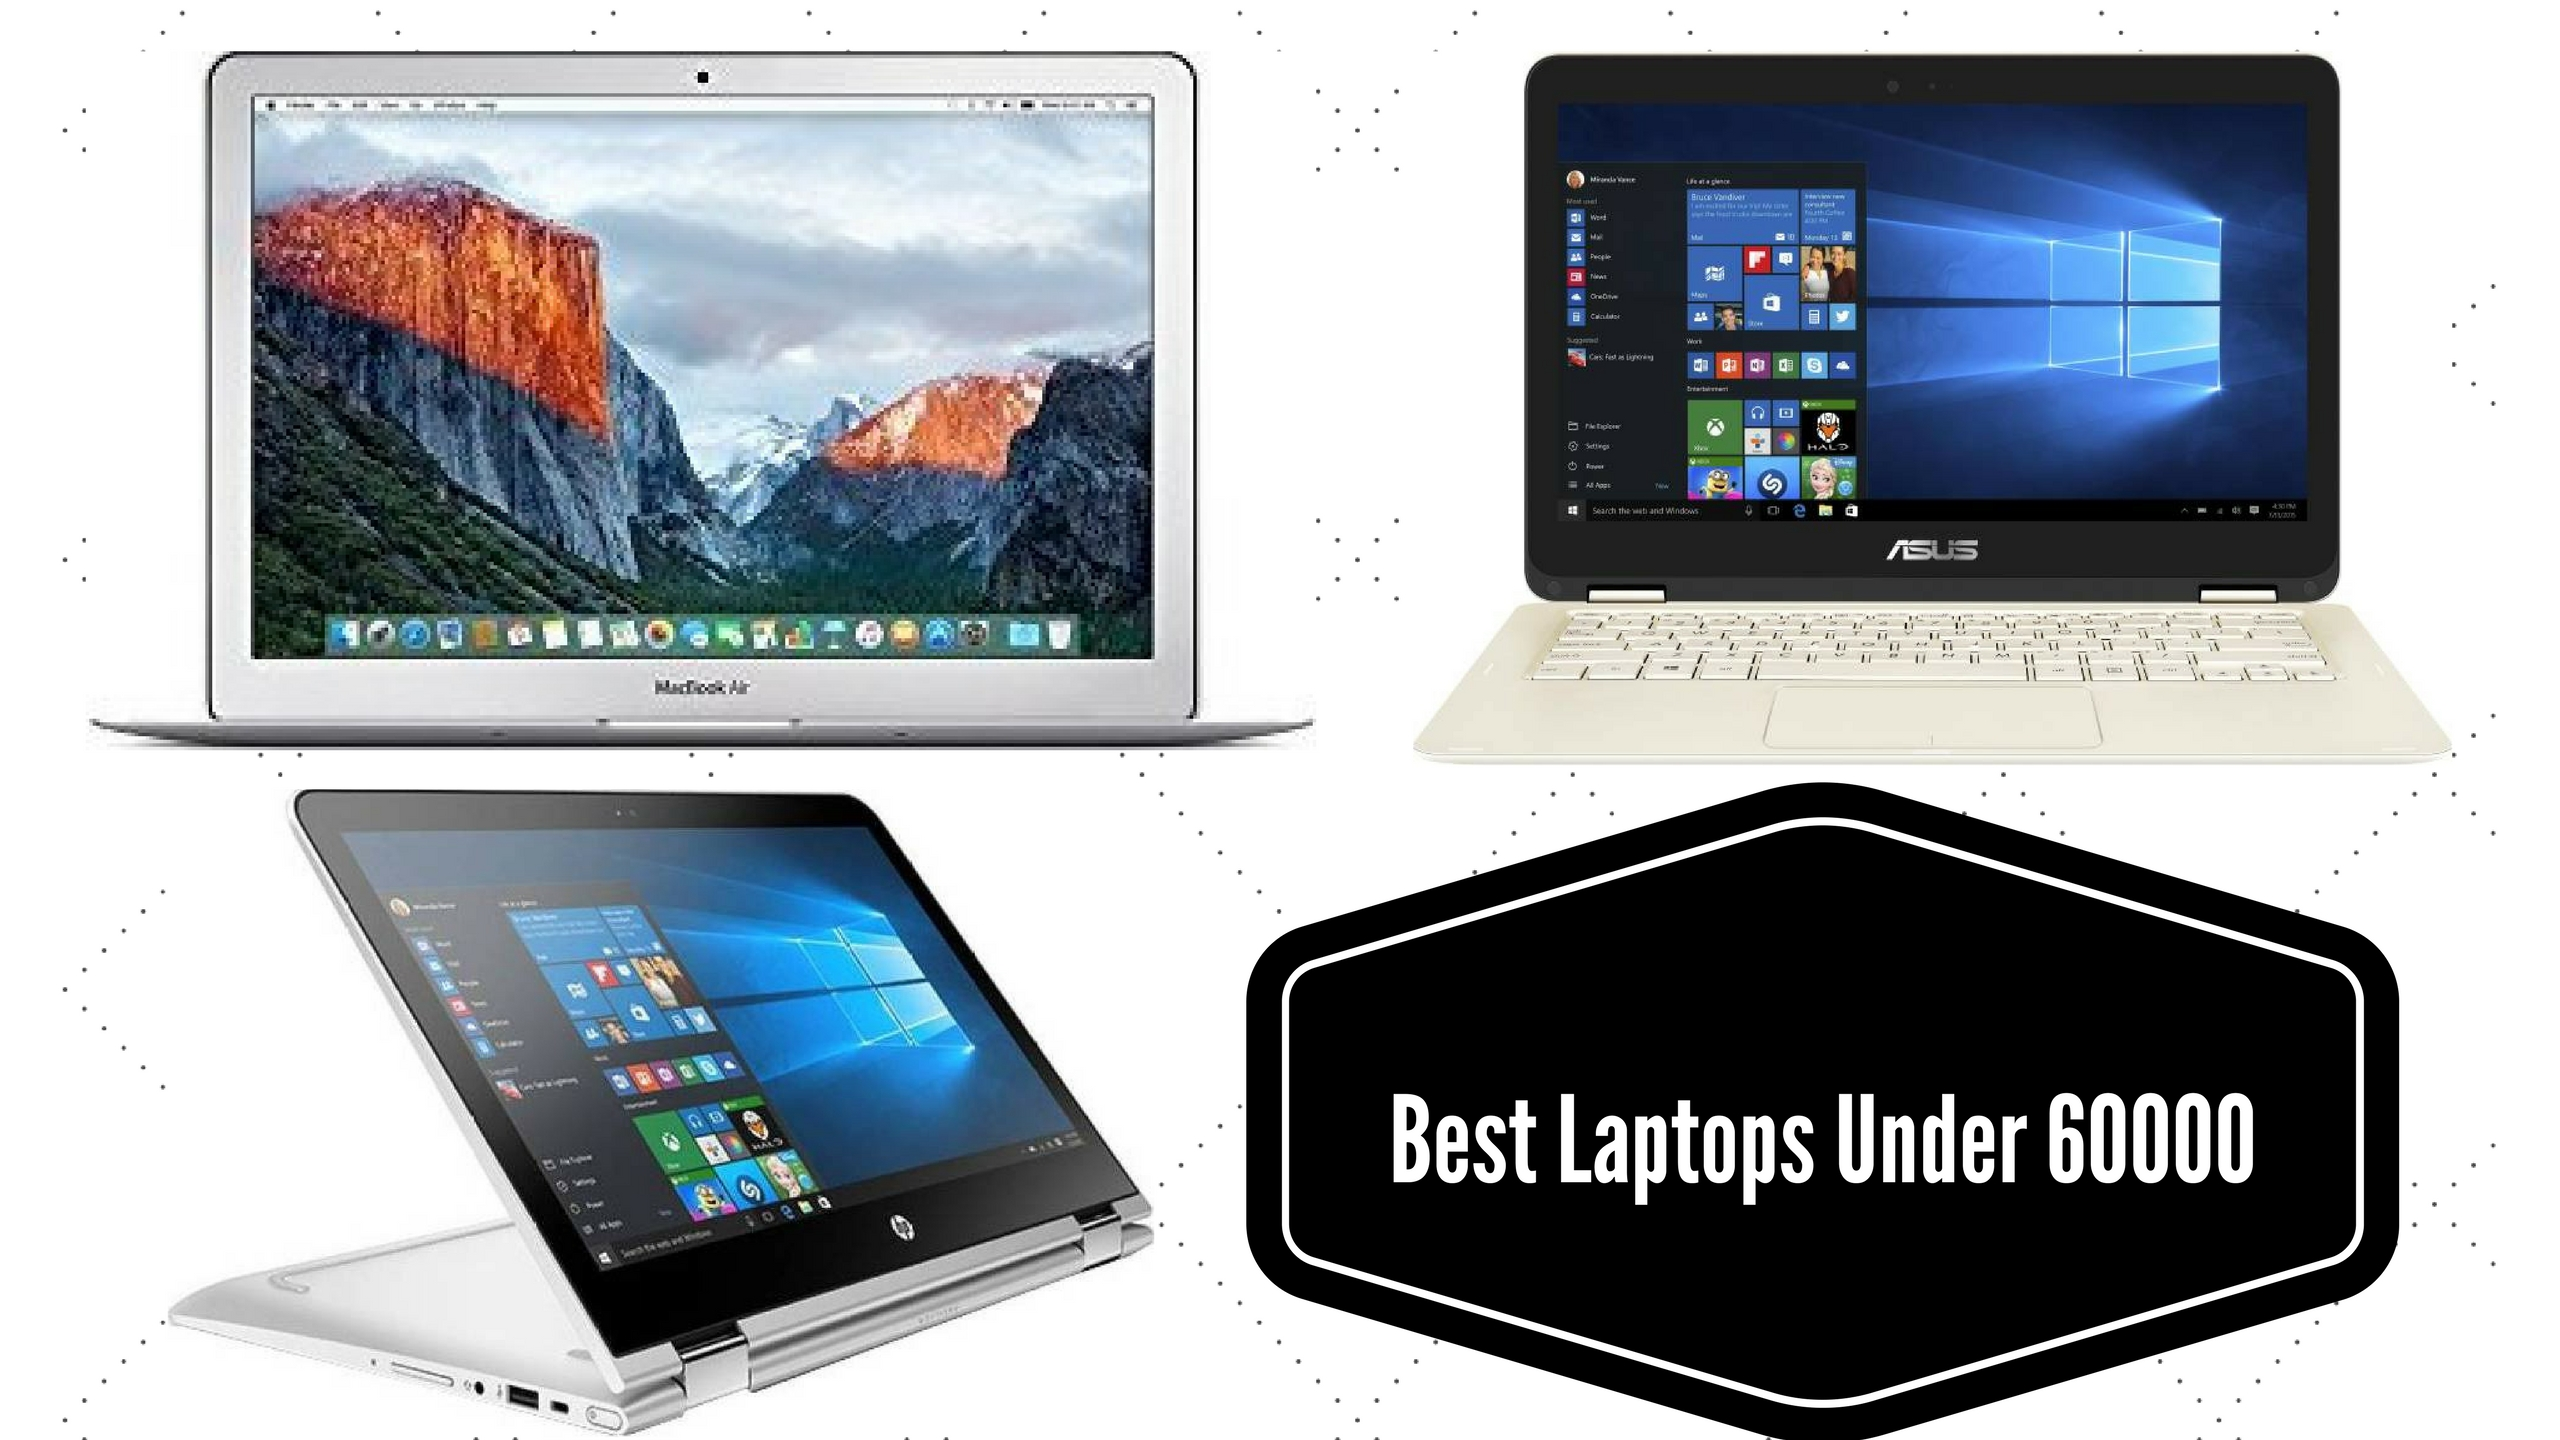 Best Laptops Under 60000